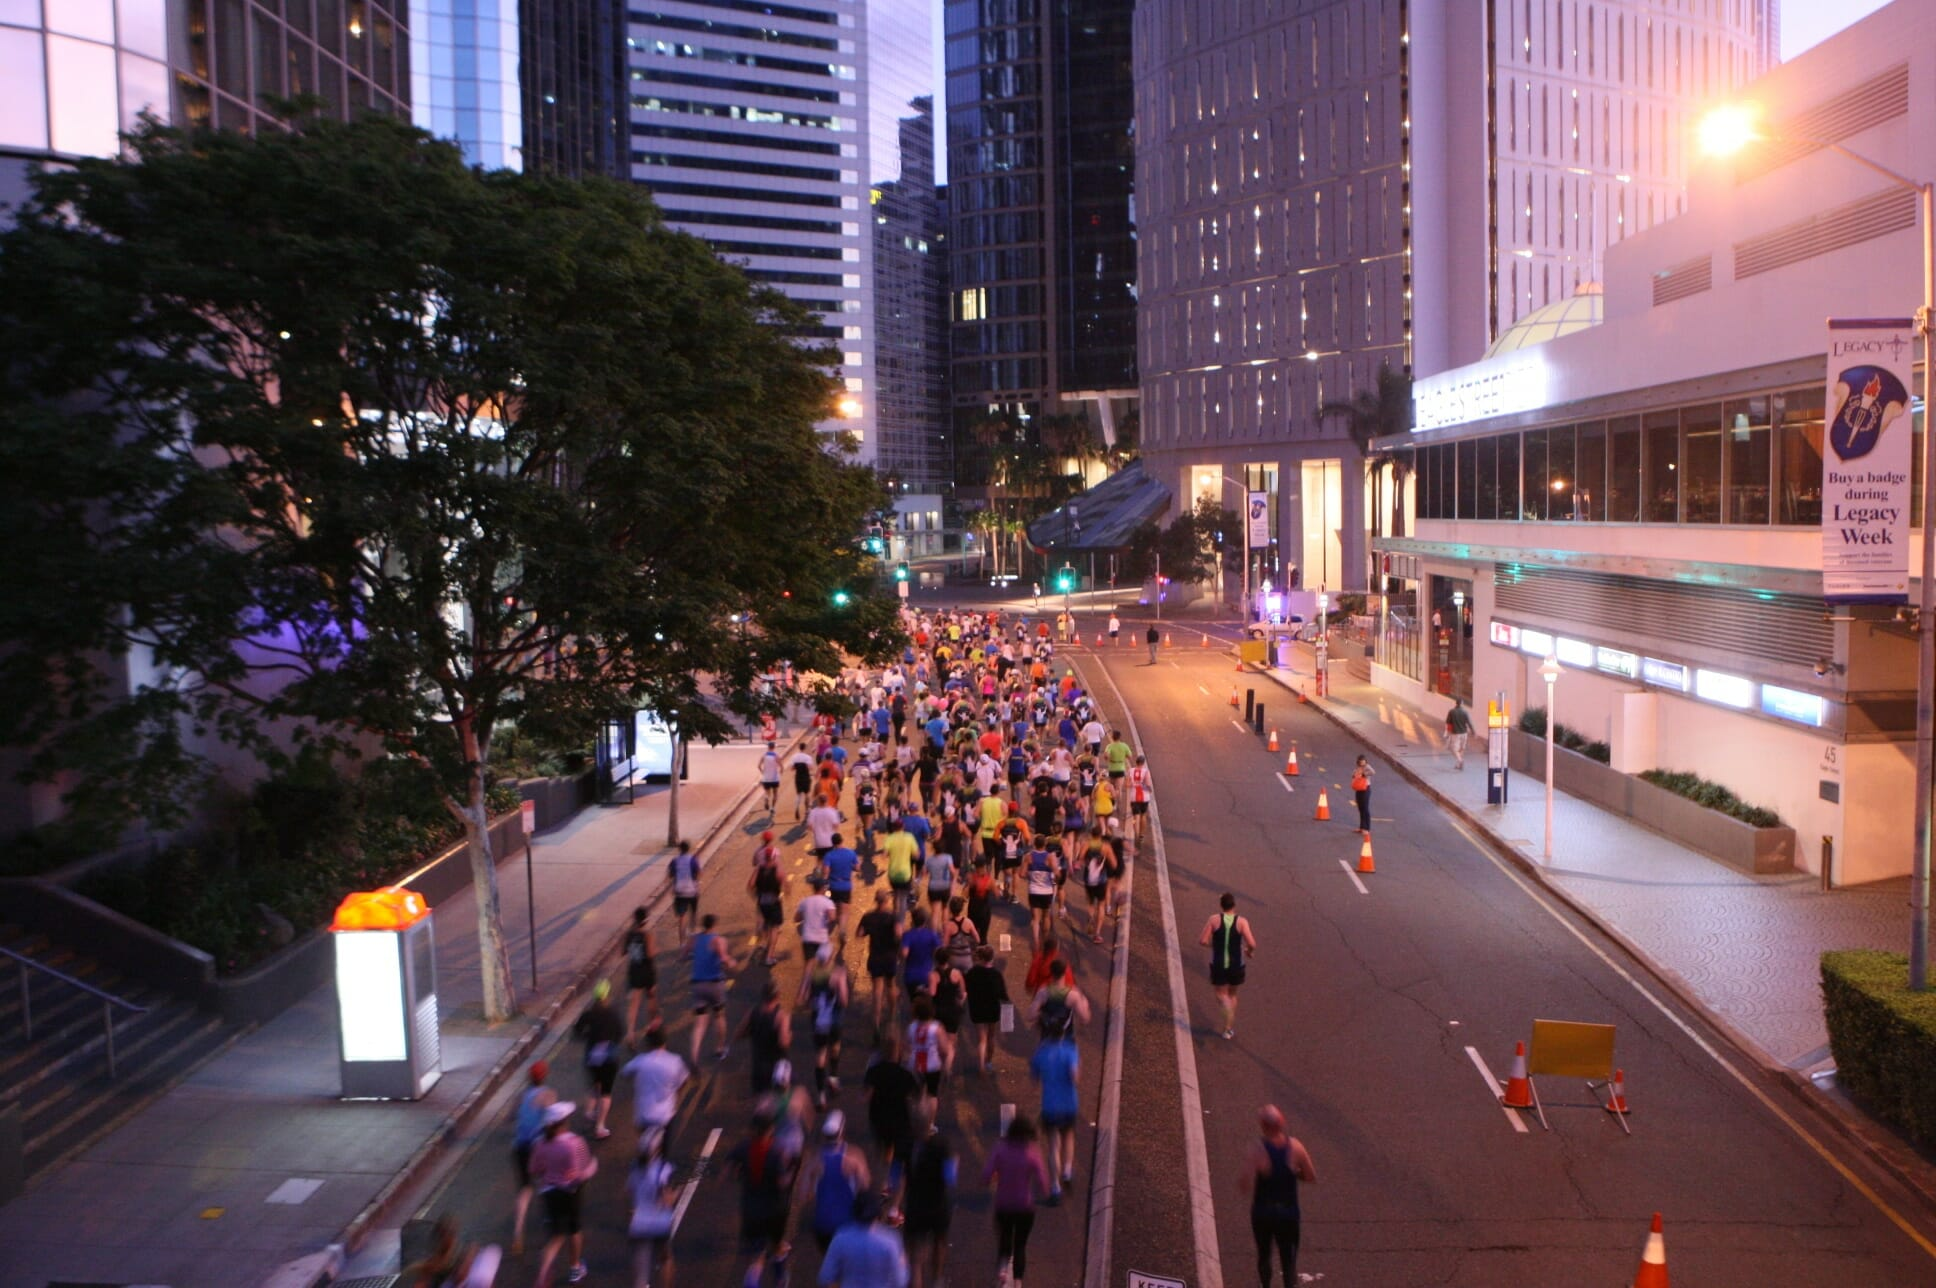 Set your sights on a marathon in 2016